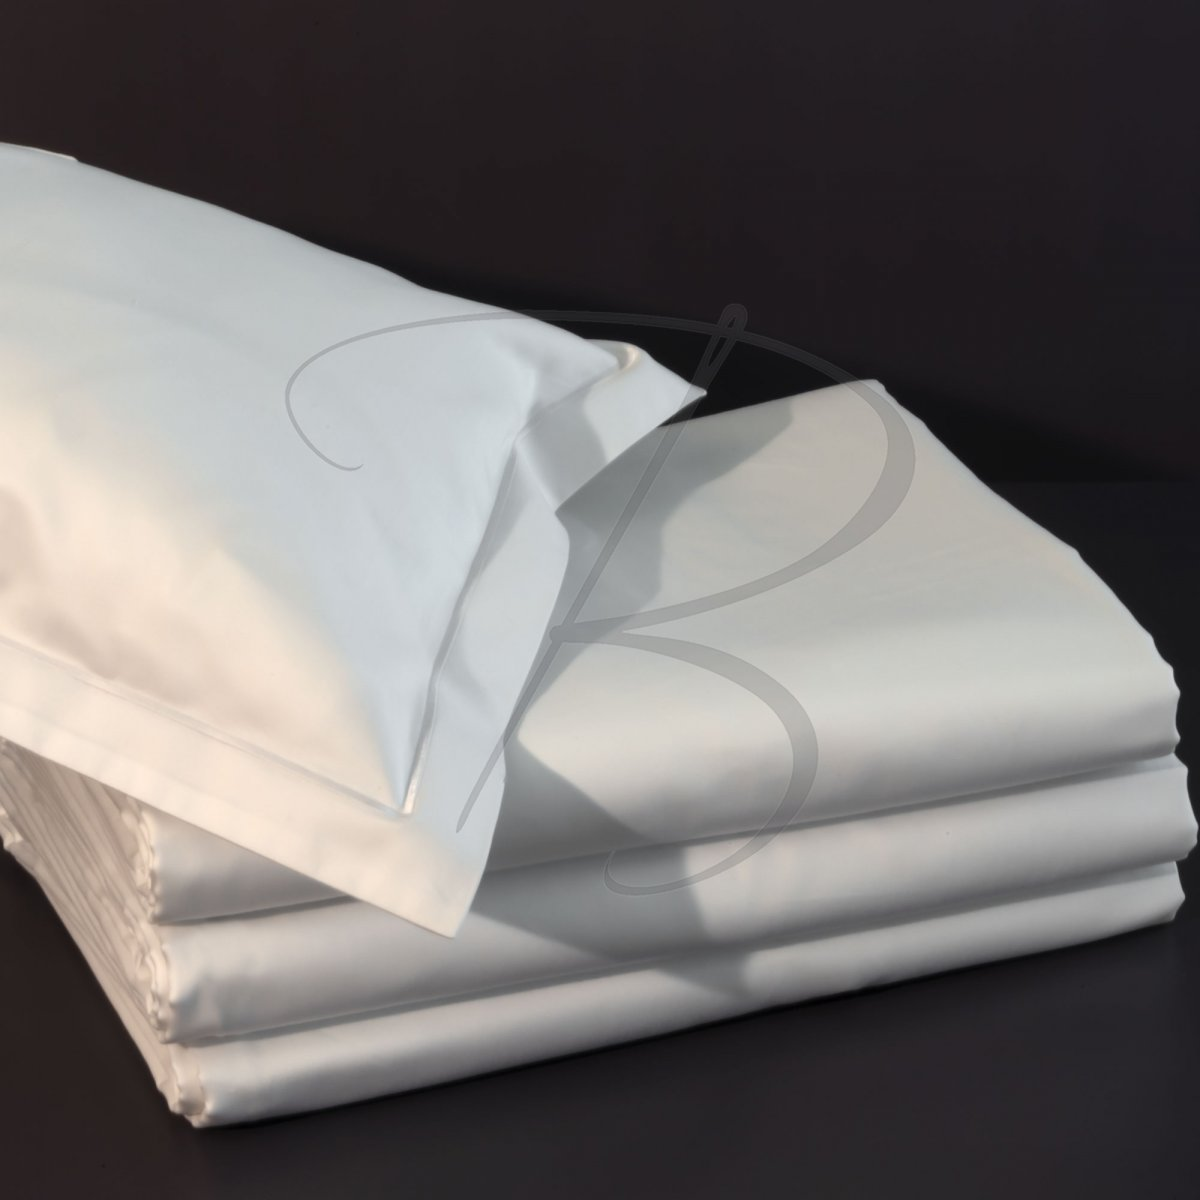 Pillowcase cotton 400 - 50 x 70 - 140g/m².